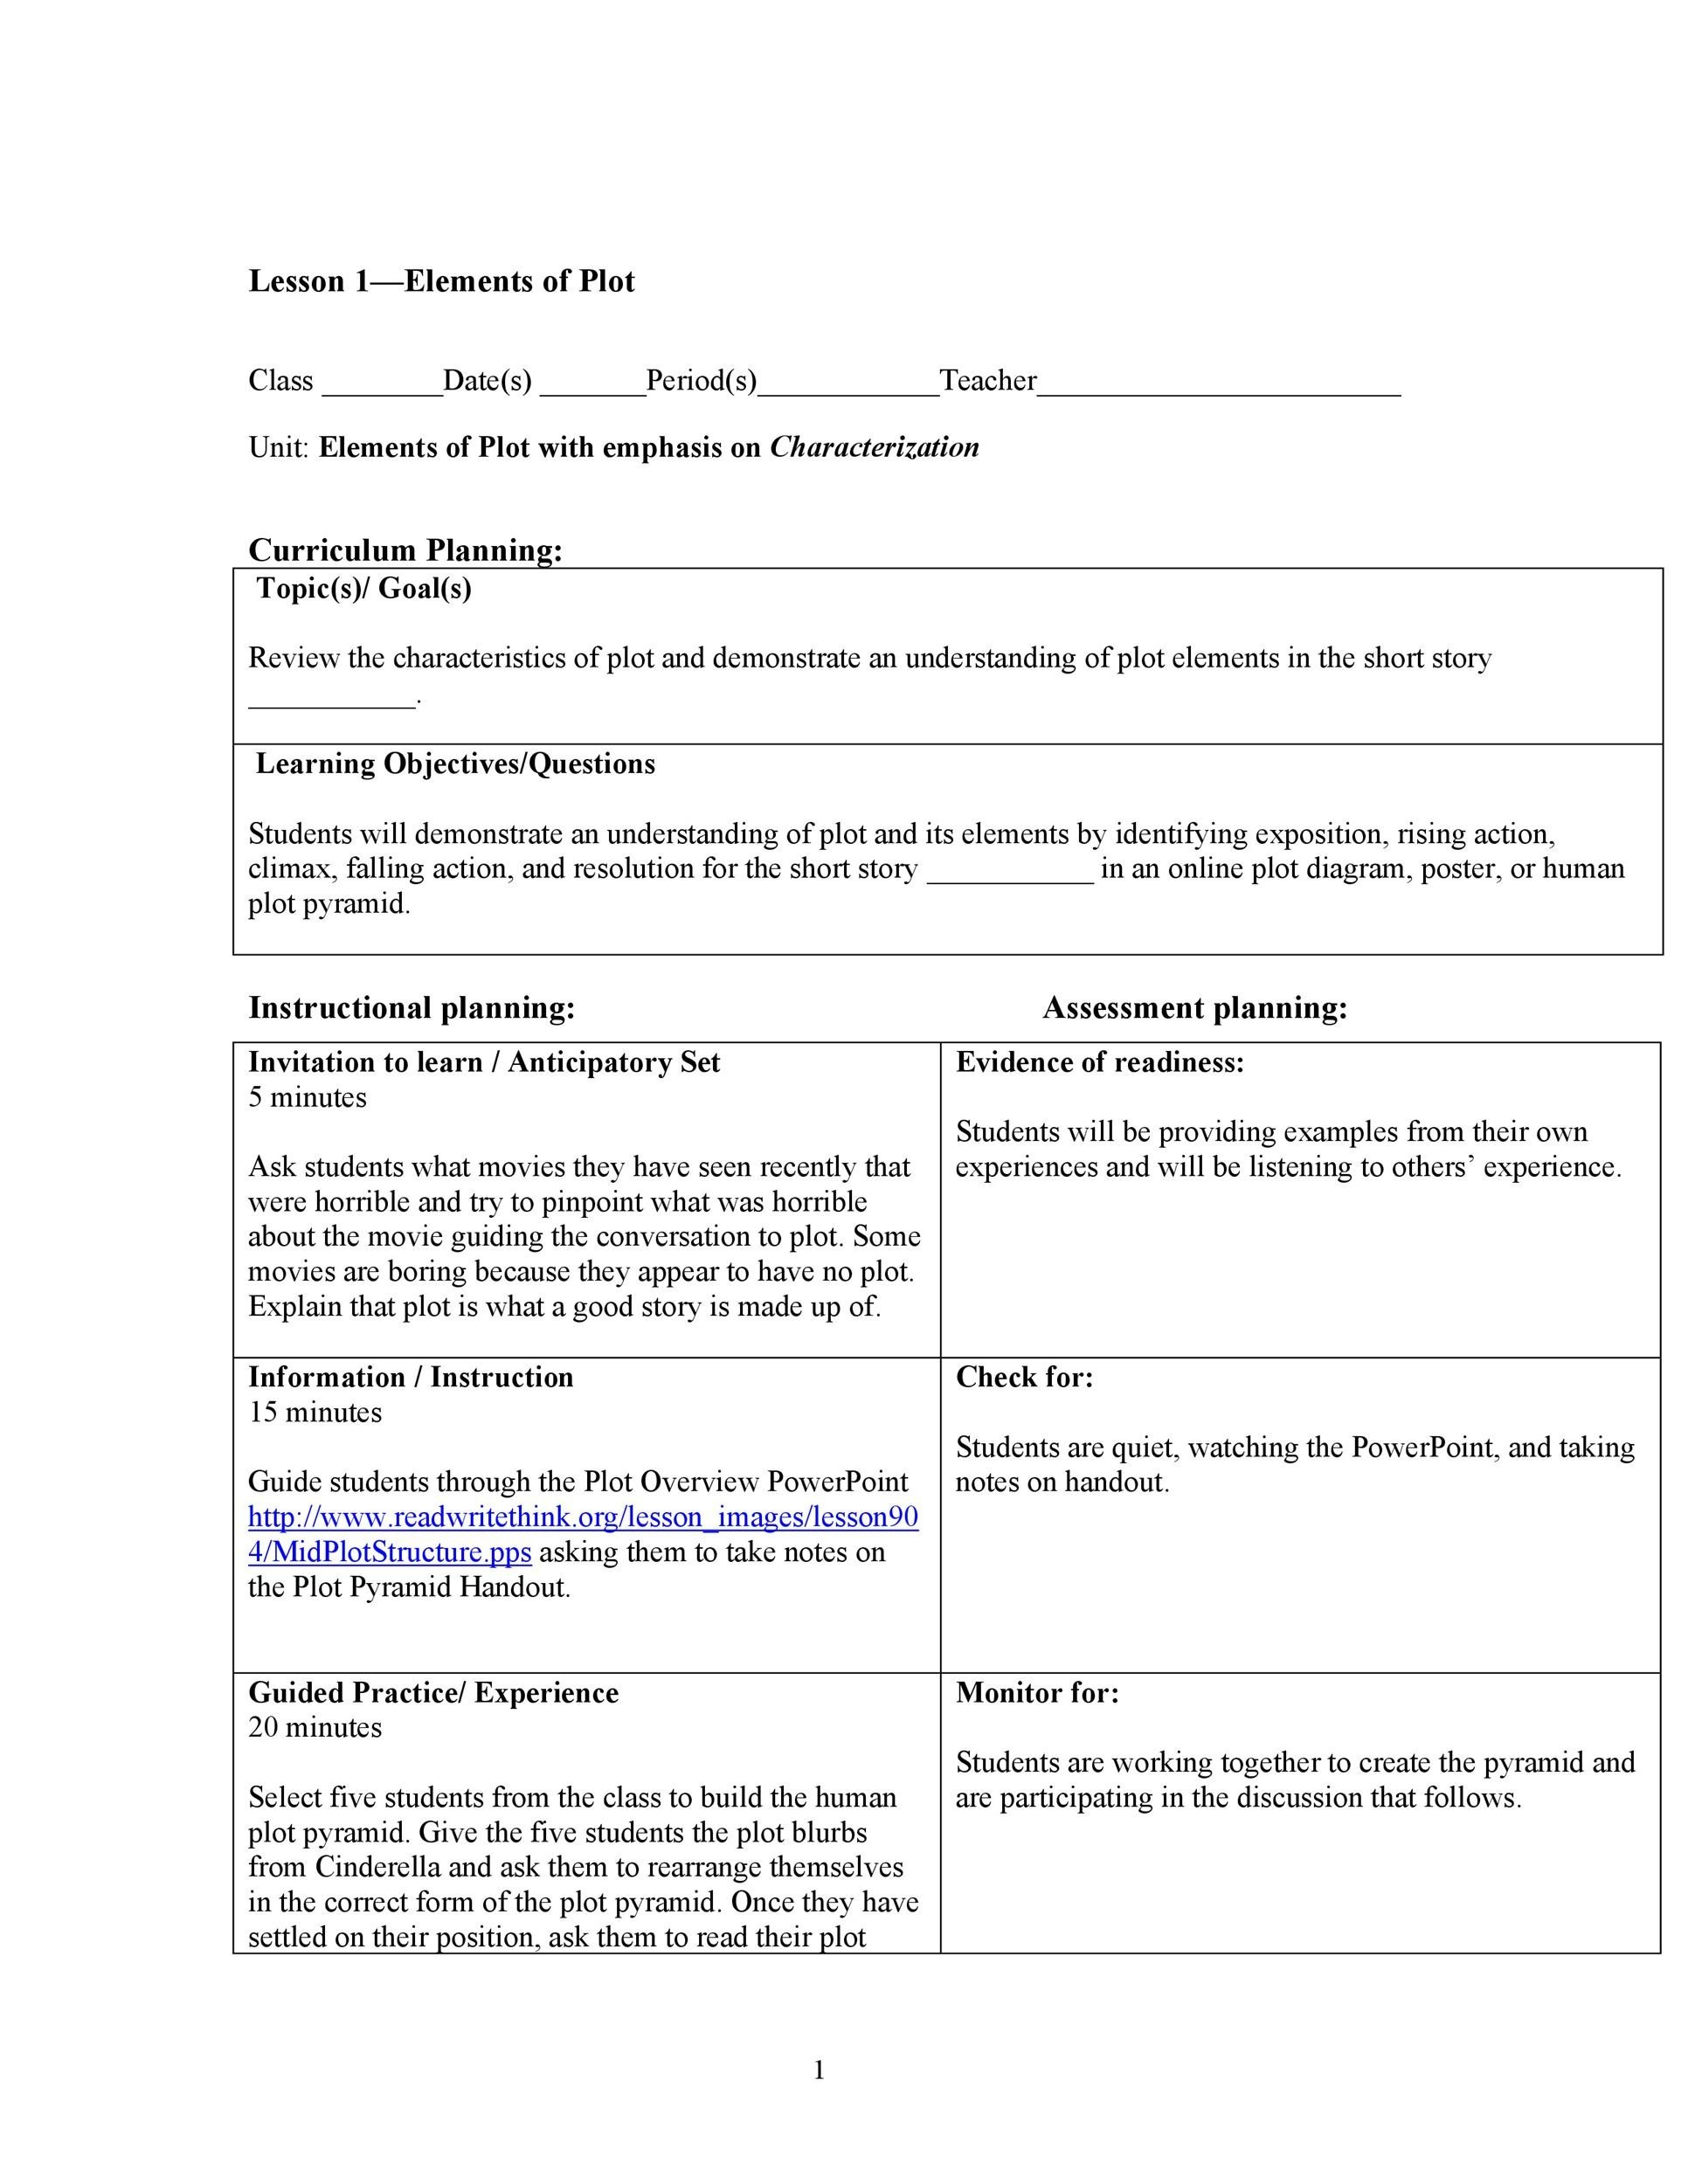 Plot Diagram Template 20 45 professional plot diagram templates (plot pyramid) template lab